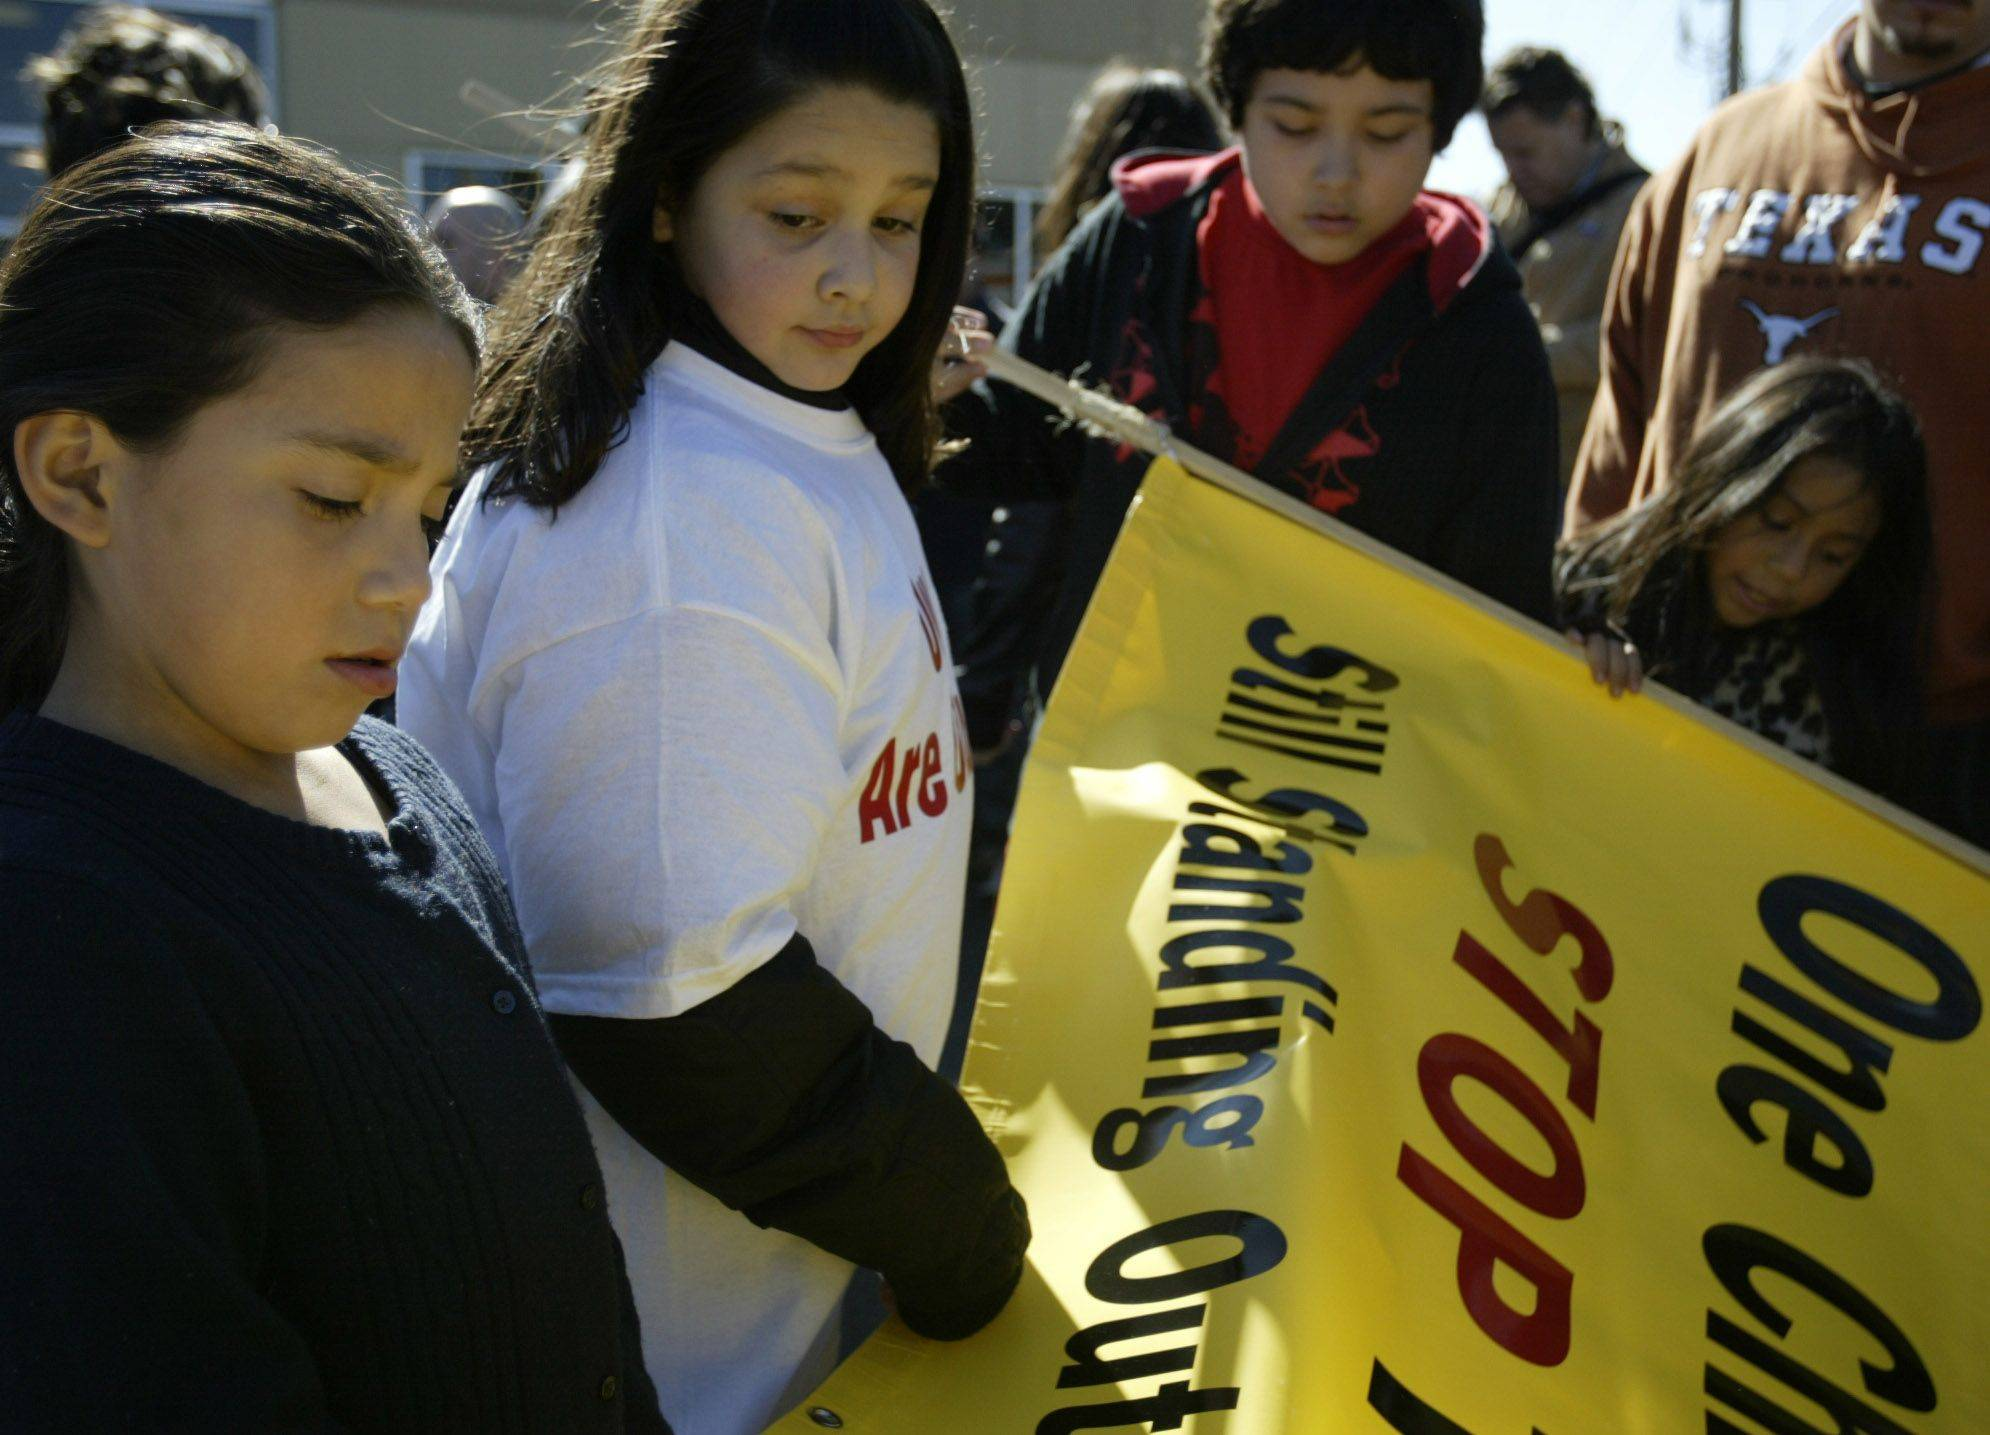 Alma Rosiles, left, 10, of Elgin, Alexis Garza, 10, of Elgin, and Jose Bosque, 11, of Elgin look at a sign before marching to protest gang violence in honor of Eric Galarza Jr. who was recently killed. More than 100 people marched with signs and shirts protesting the violence.